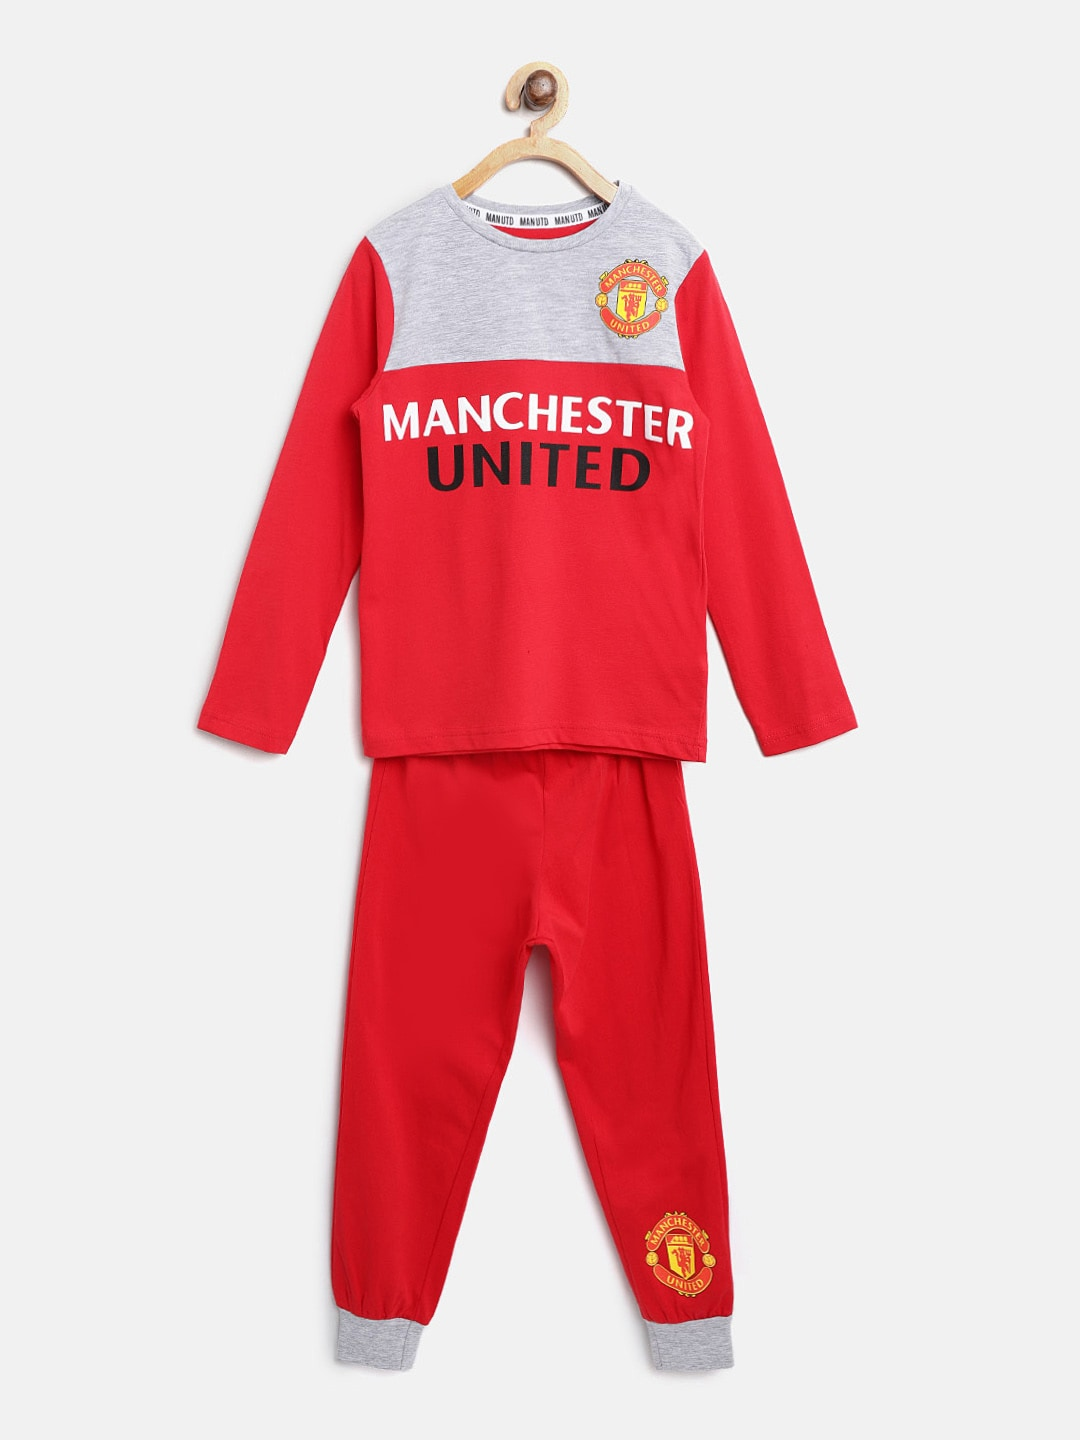 324c2f1aa Manchester United Clothing - Buy Manchester United Clothing Online in India